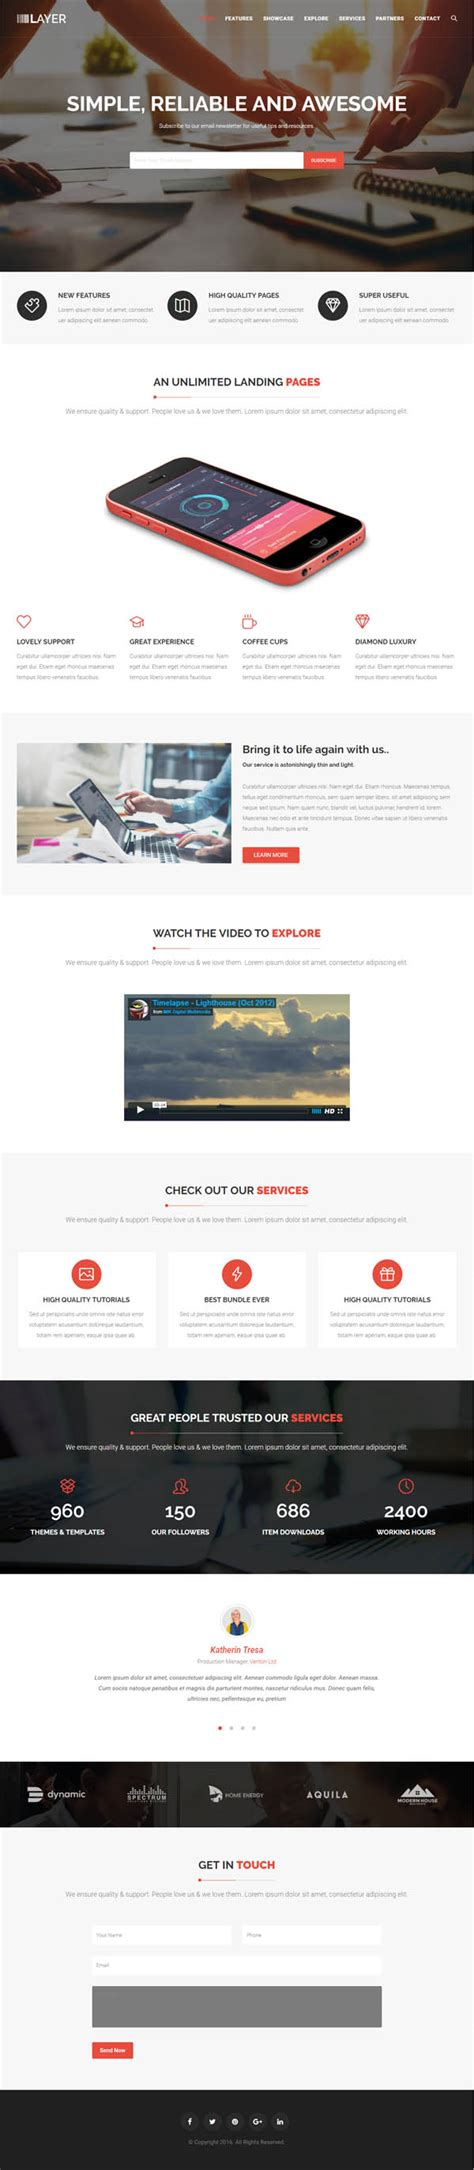 wordpress theme one page layout layer simple one page wordpress themes wordpress